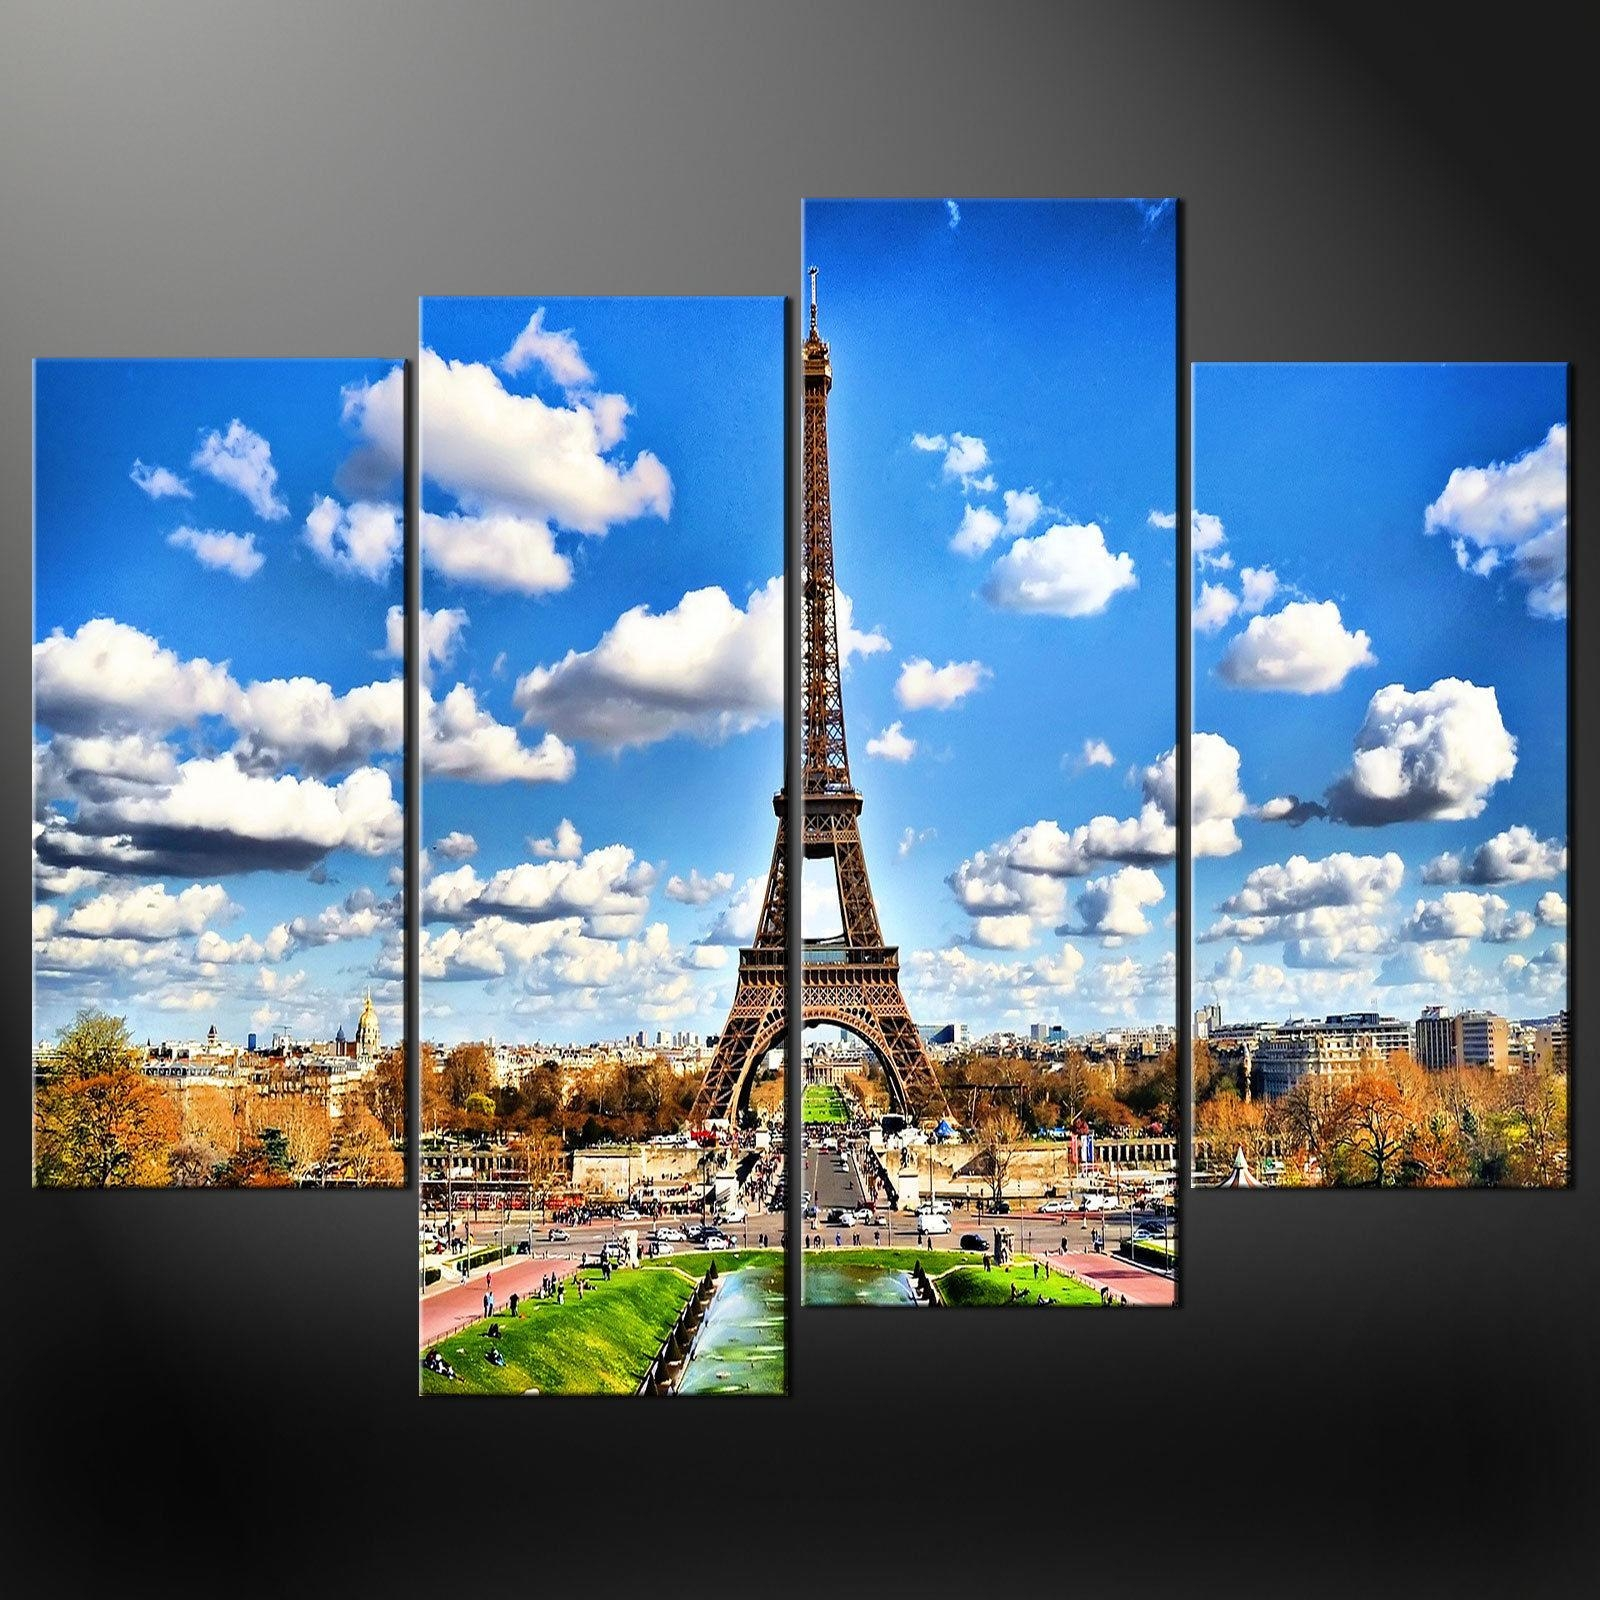 Paris Eiffel Tower Canvas Wall Art Pictures Prints Larger Sizes Throughout Eiffel Tower Wall Art (Image 14 of 20)